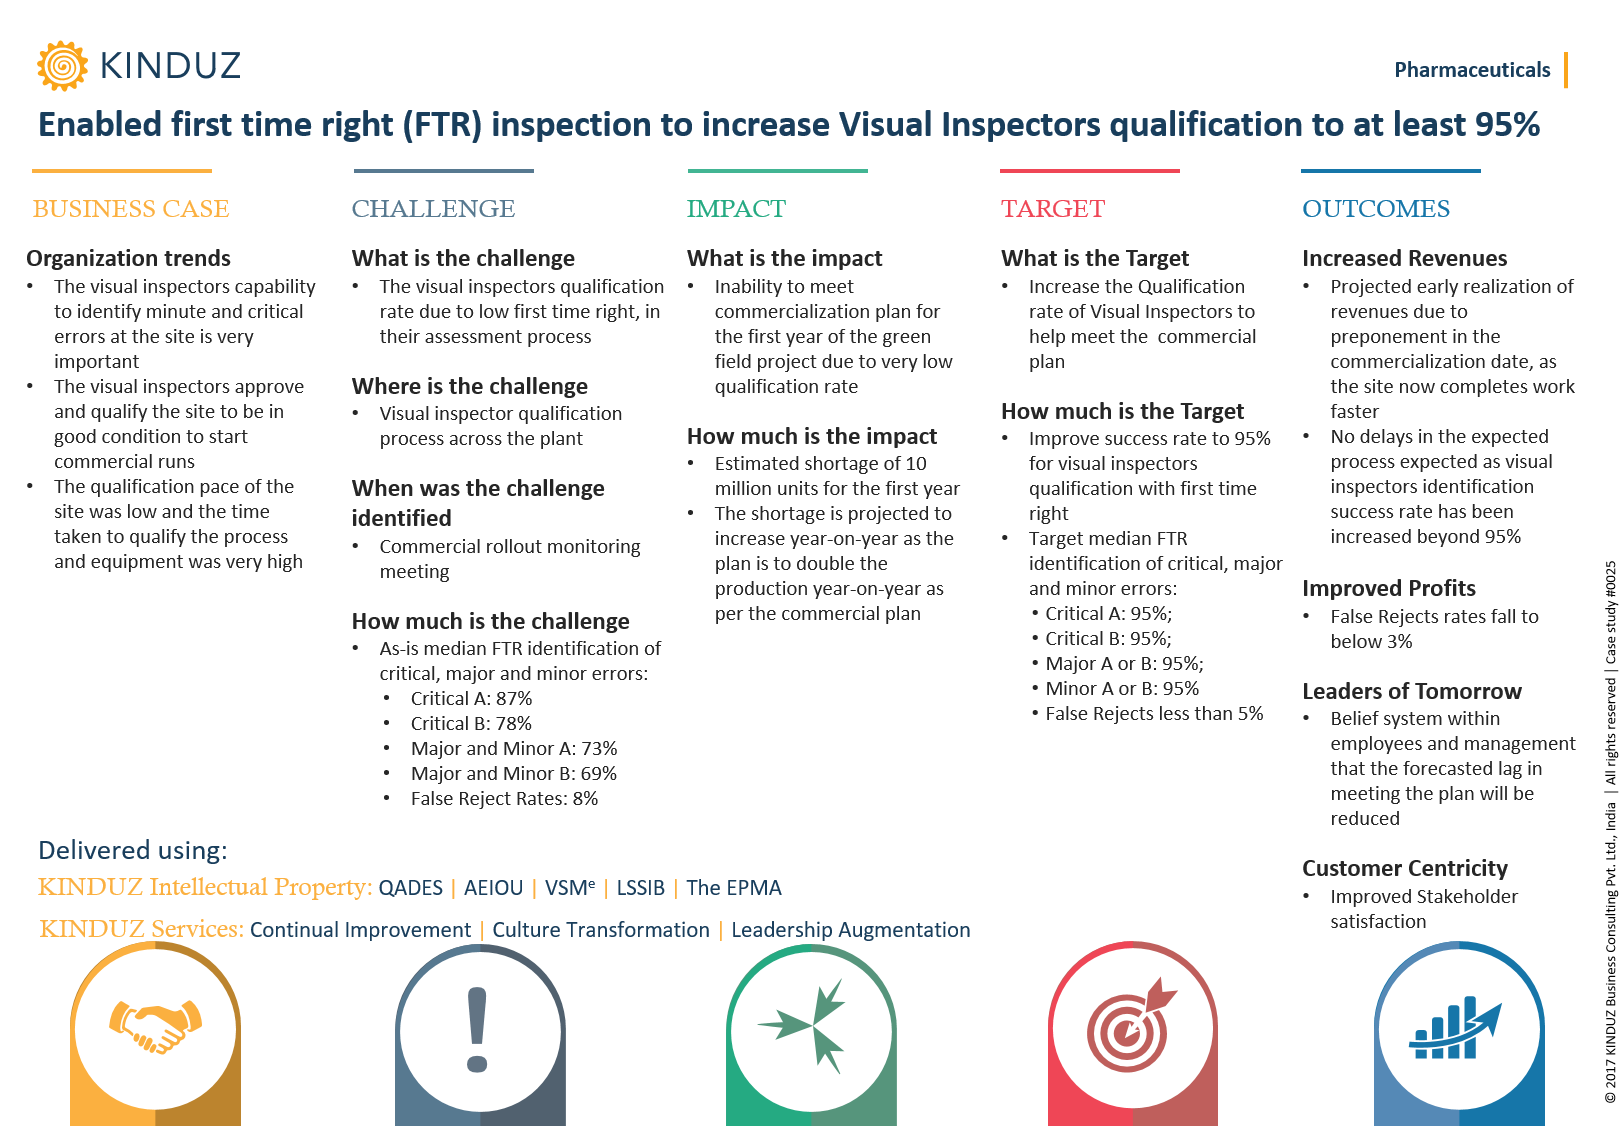 enabled-first-time-right-ftr-inspection-to-increase-visual-inspectors-qualification-to-at-least-95